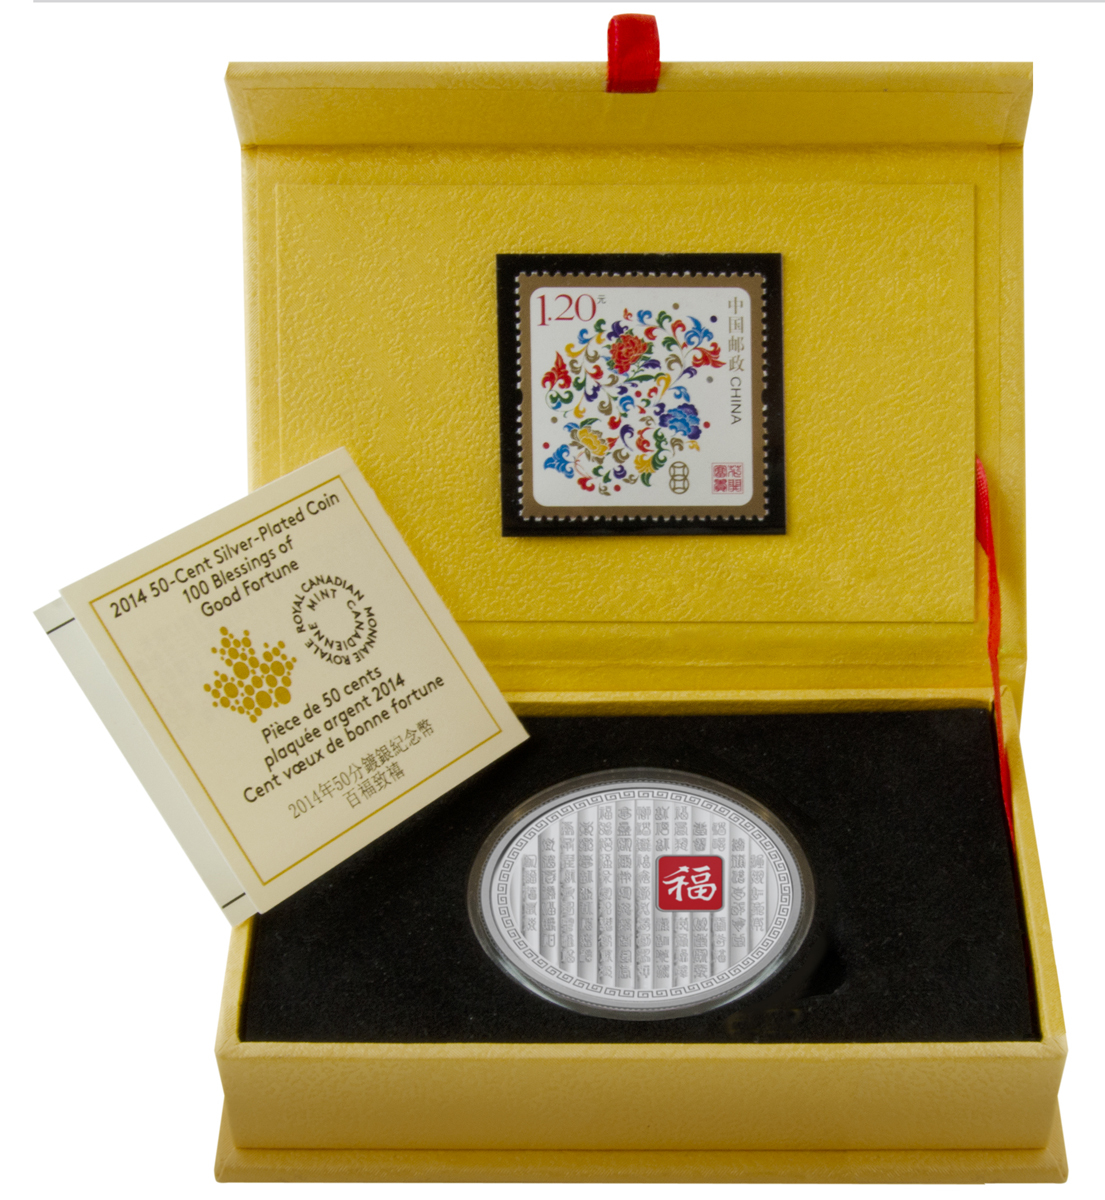 CANADA 50 cents 2013 100 Blessings of Good Fortune Coin with Stamp Set